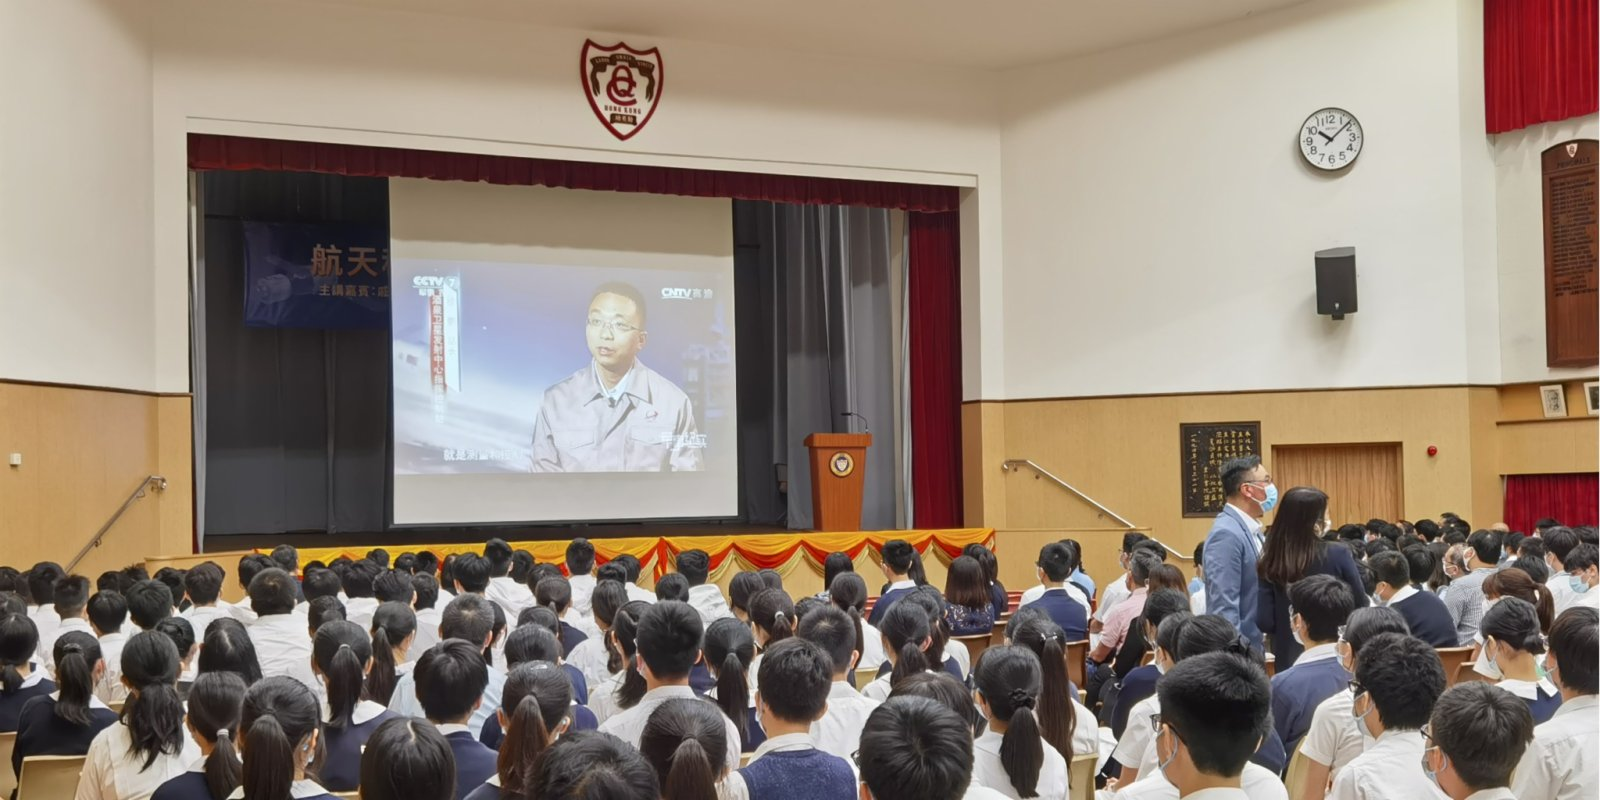 National space scientists' HK visit well-received by local students